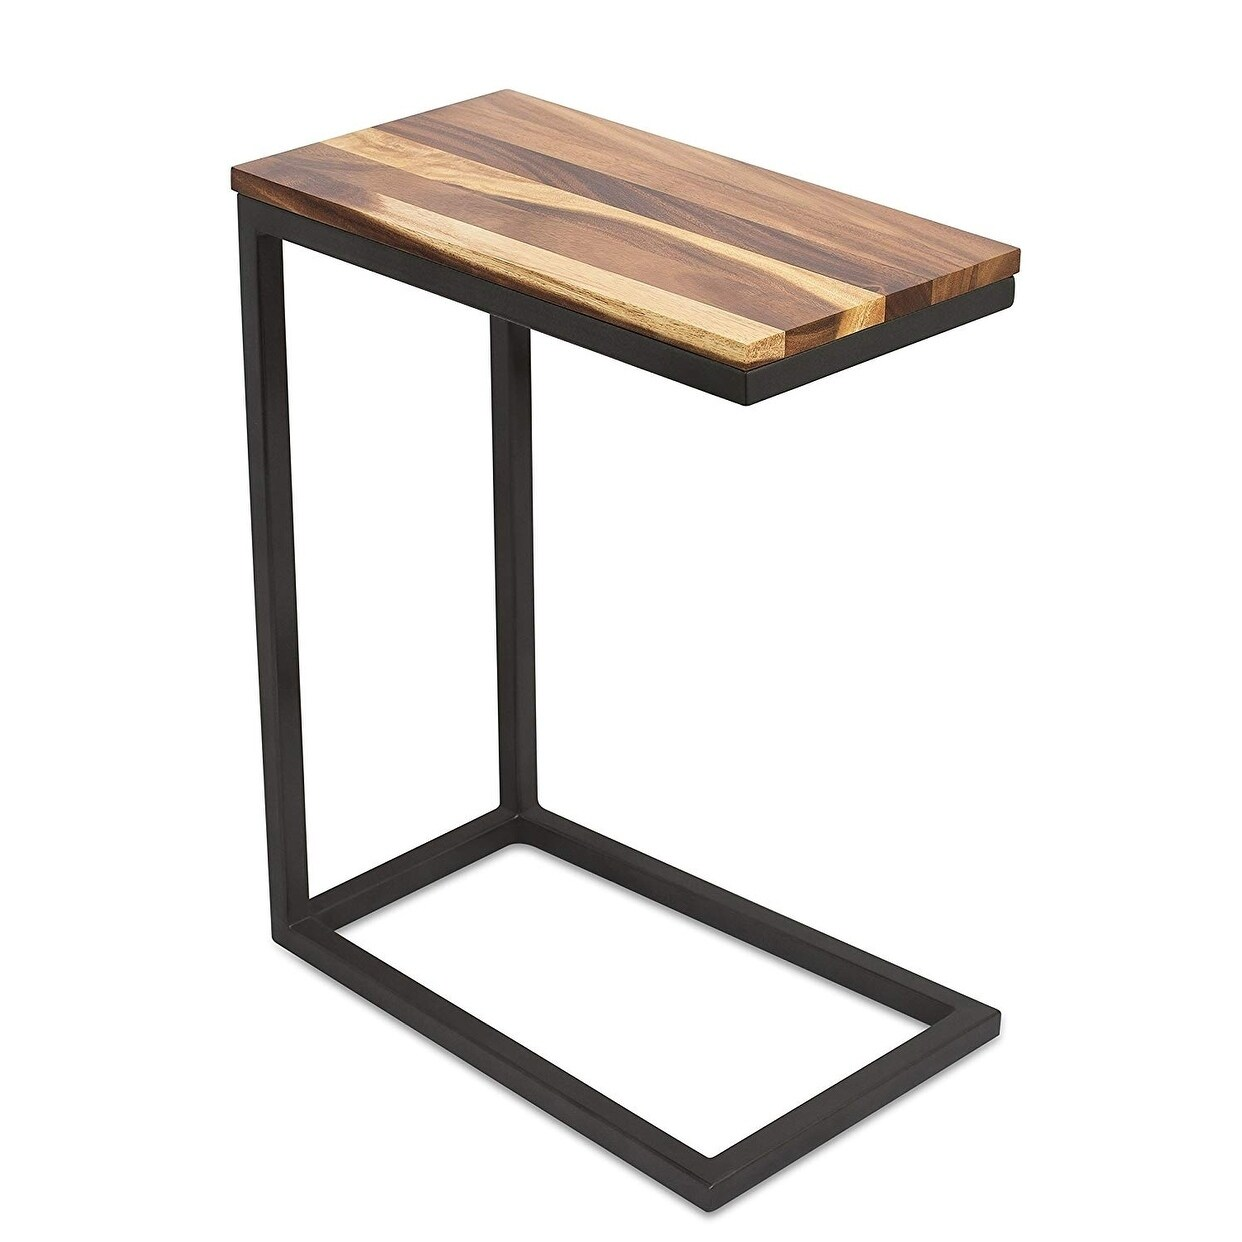 Birdrock Home Acacia Wood Tv Tray Side Table Natural Wood End Table Overstock 20740294